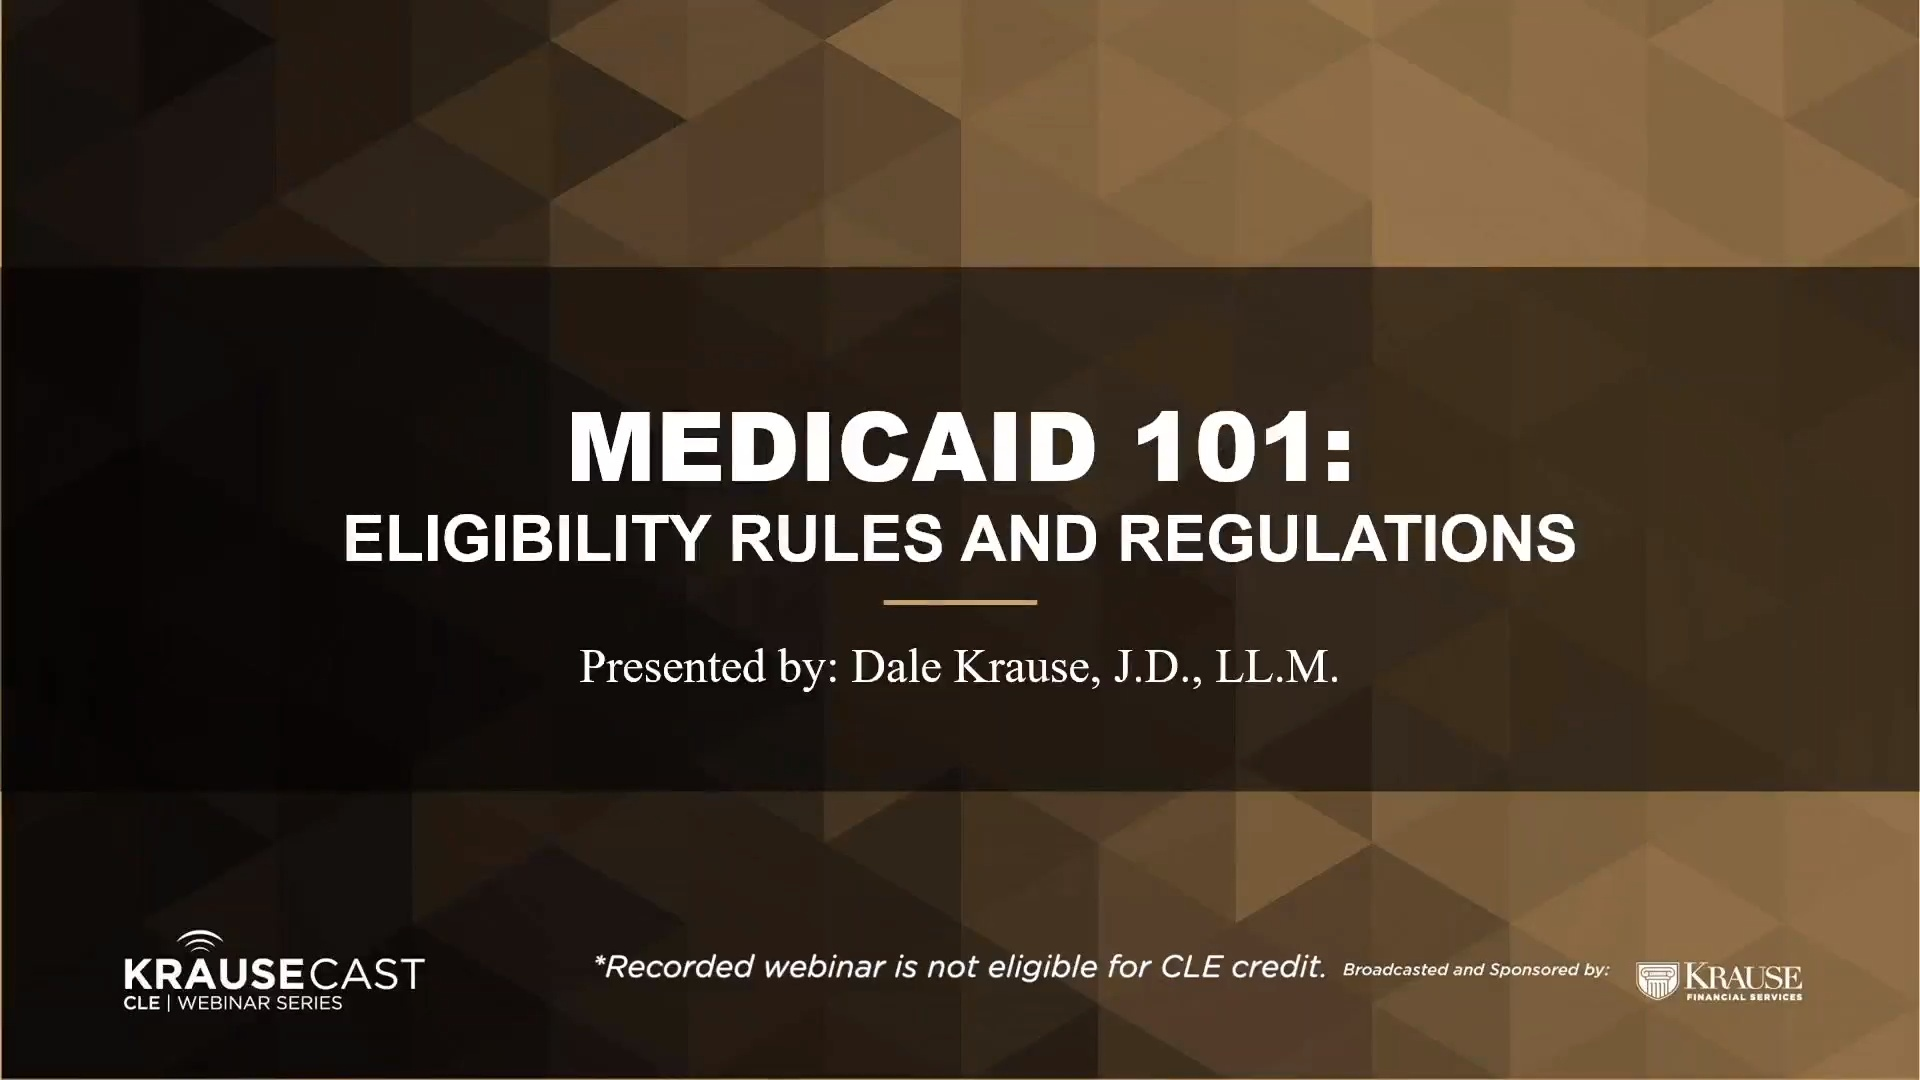 Medicaid 101: Eligibility Rules and Regulations